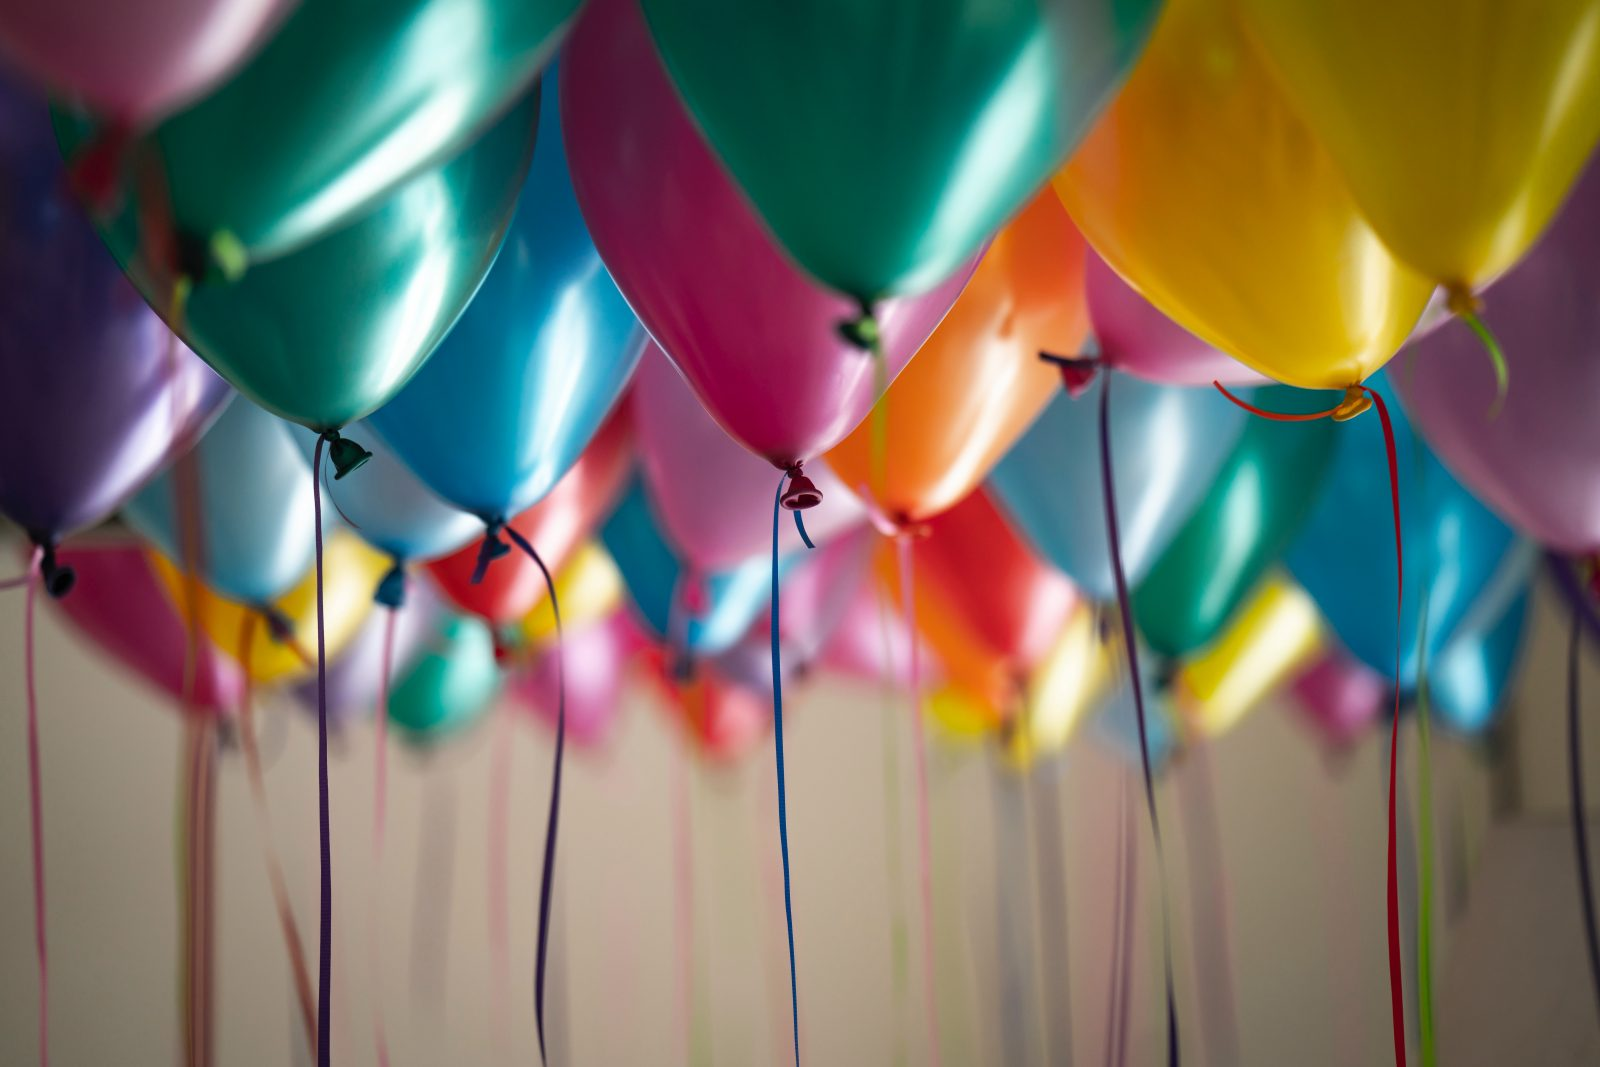 Close up photo of multi-colored balloons